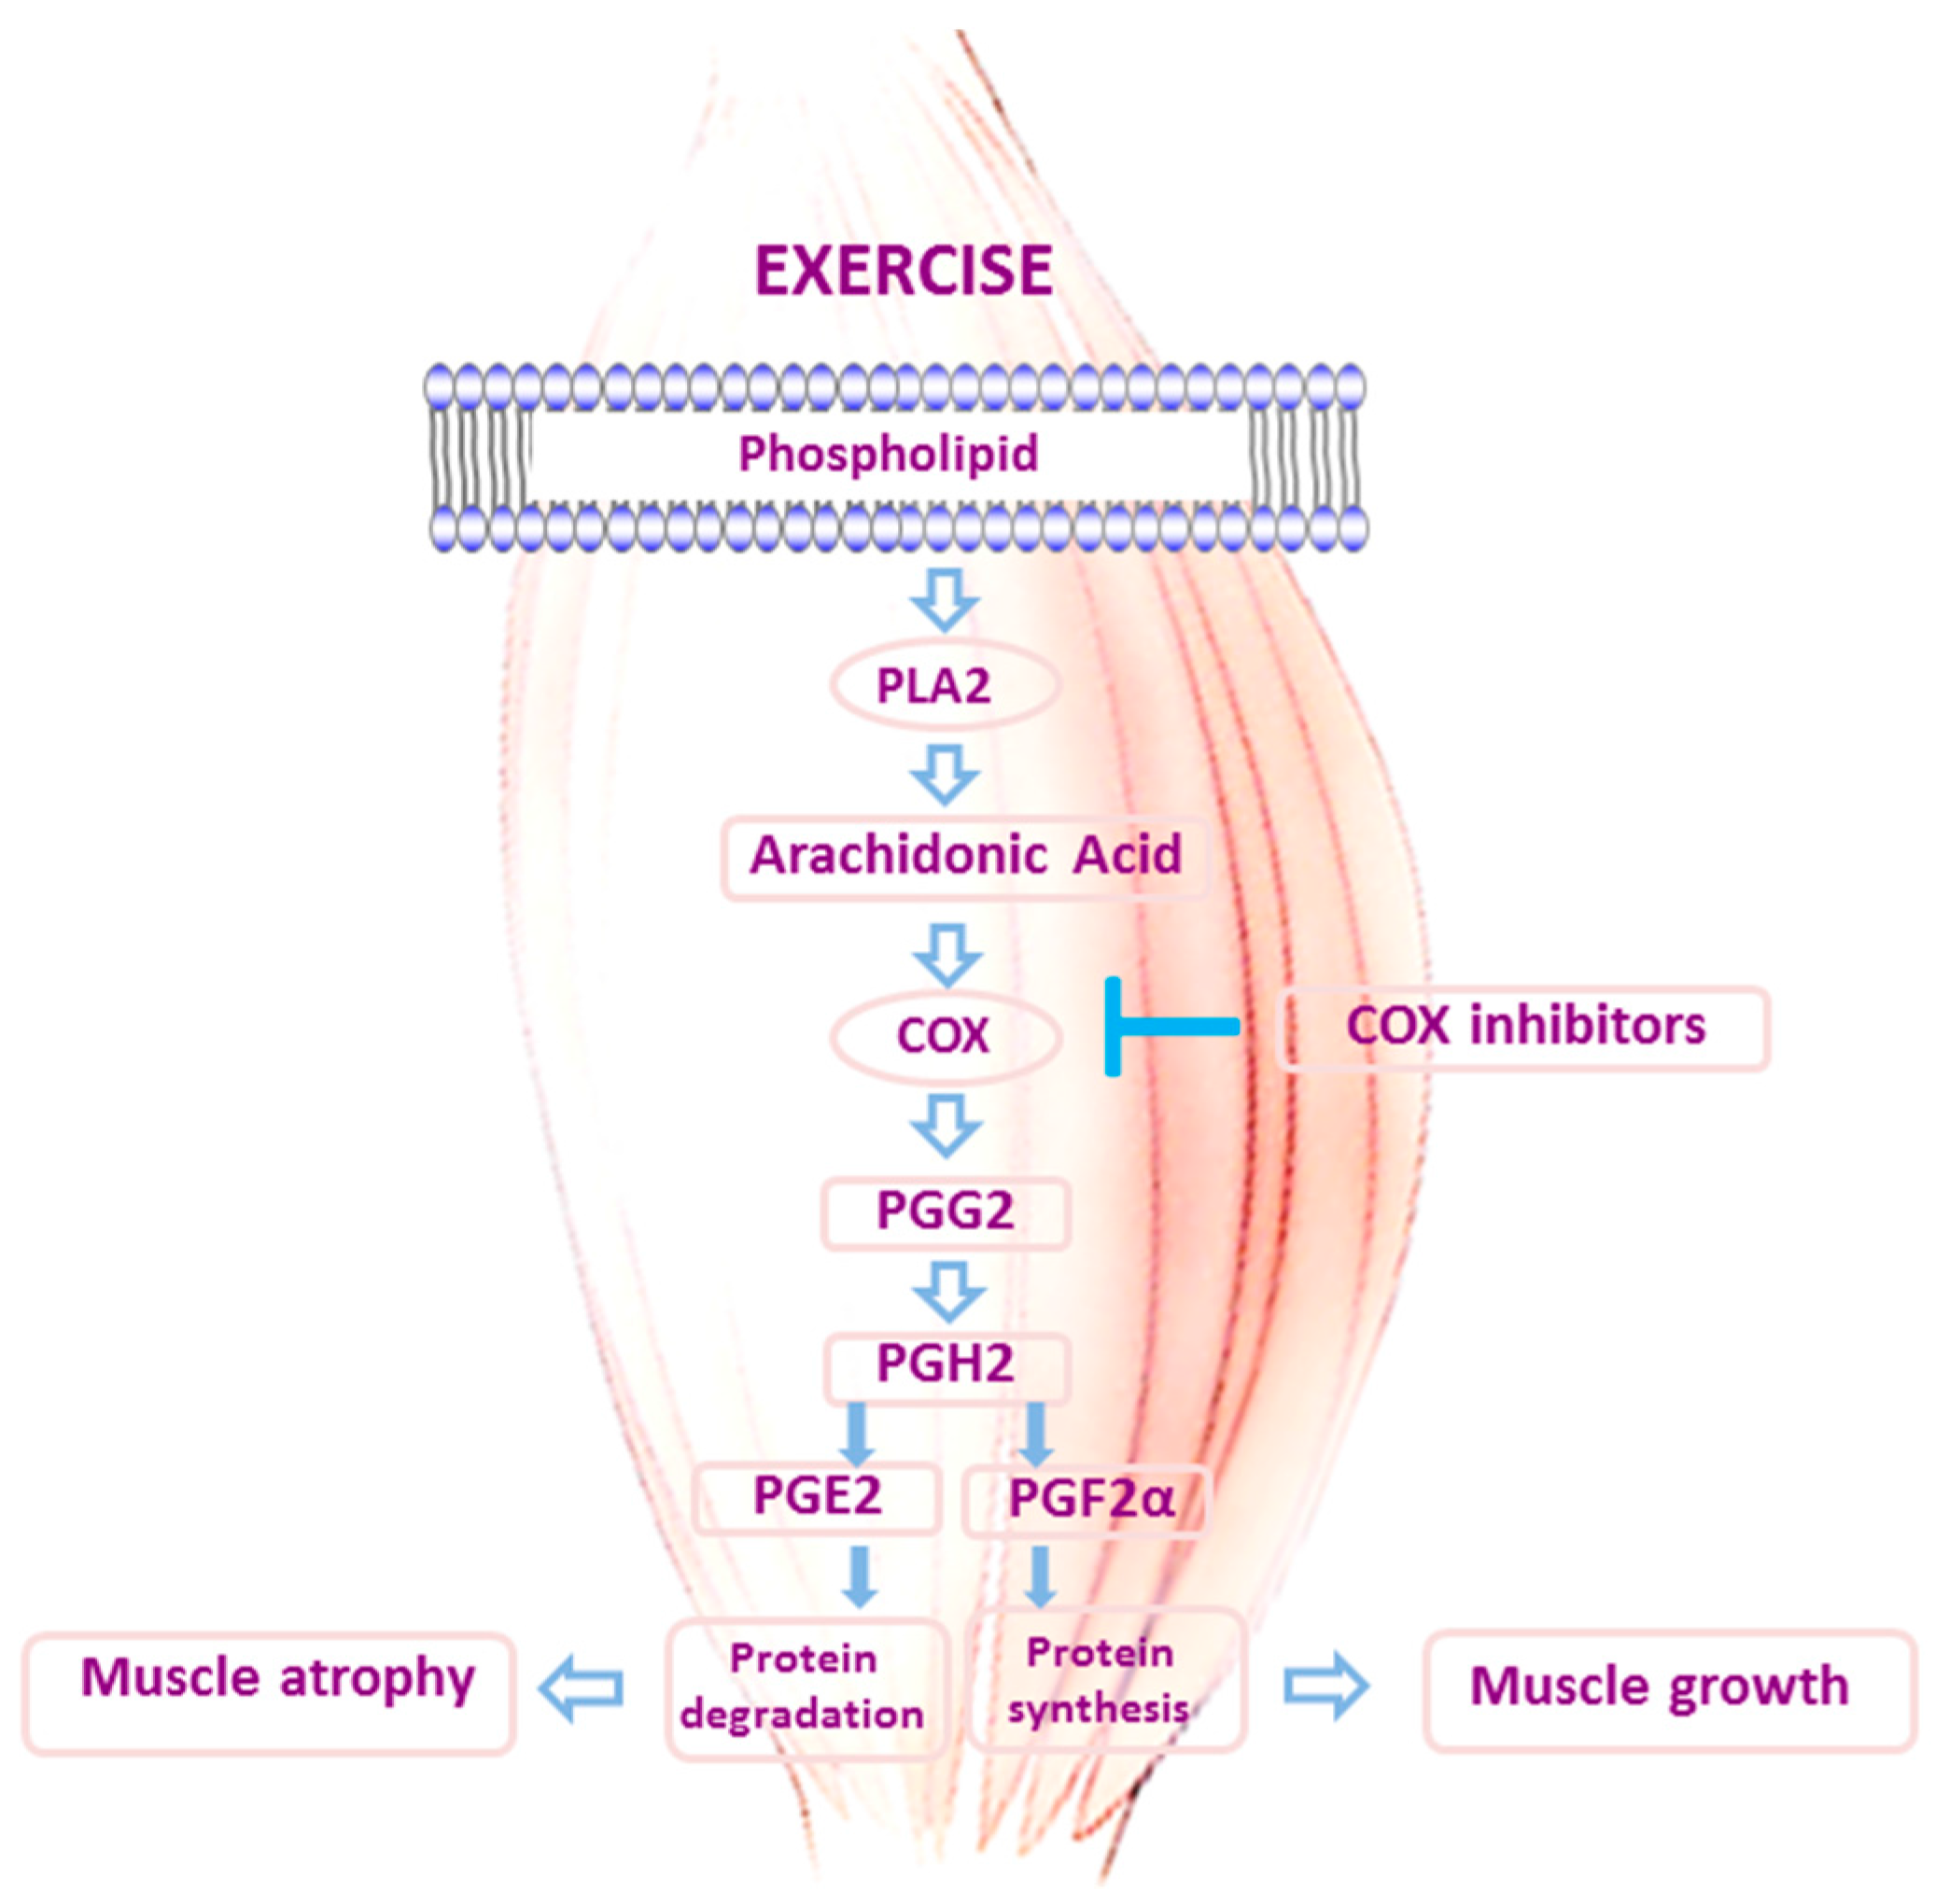 exercise 2 skeletal muscle Here, we review the metabolic responses and molecular mechanisms that underpin the adaptatation of skeletal muscle to acute exercise and exercise training.